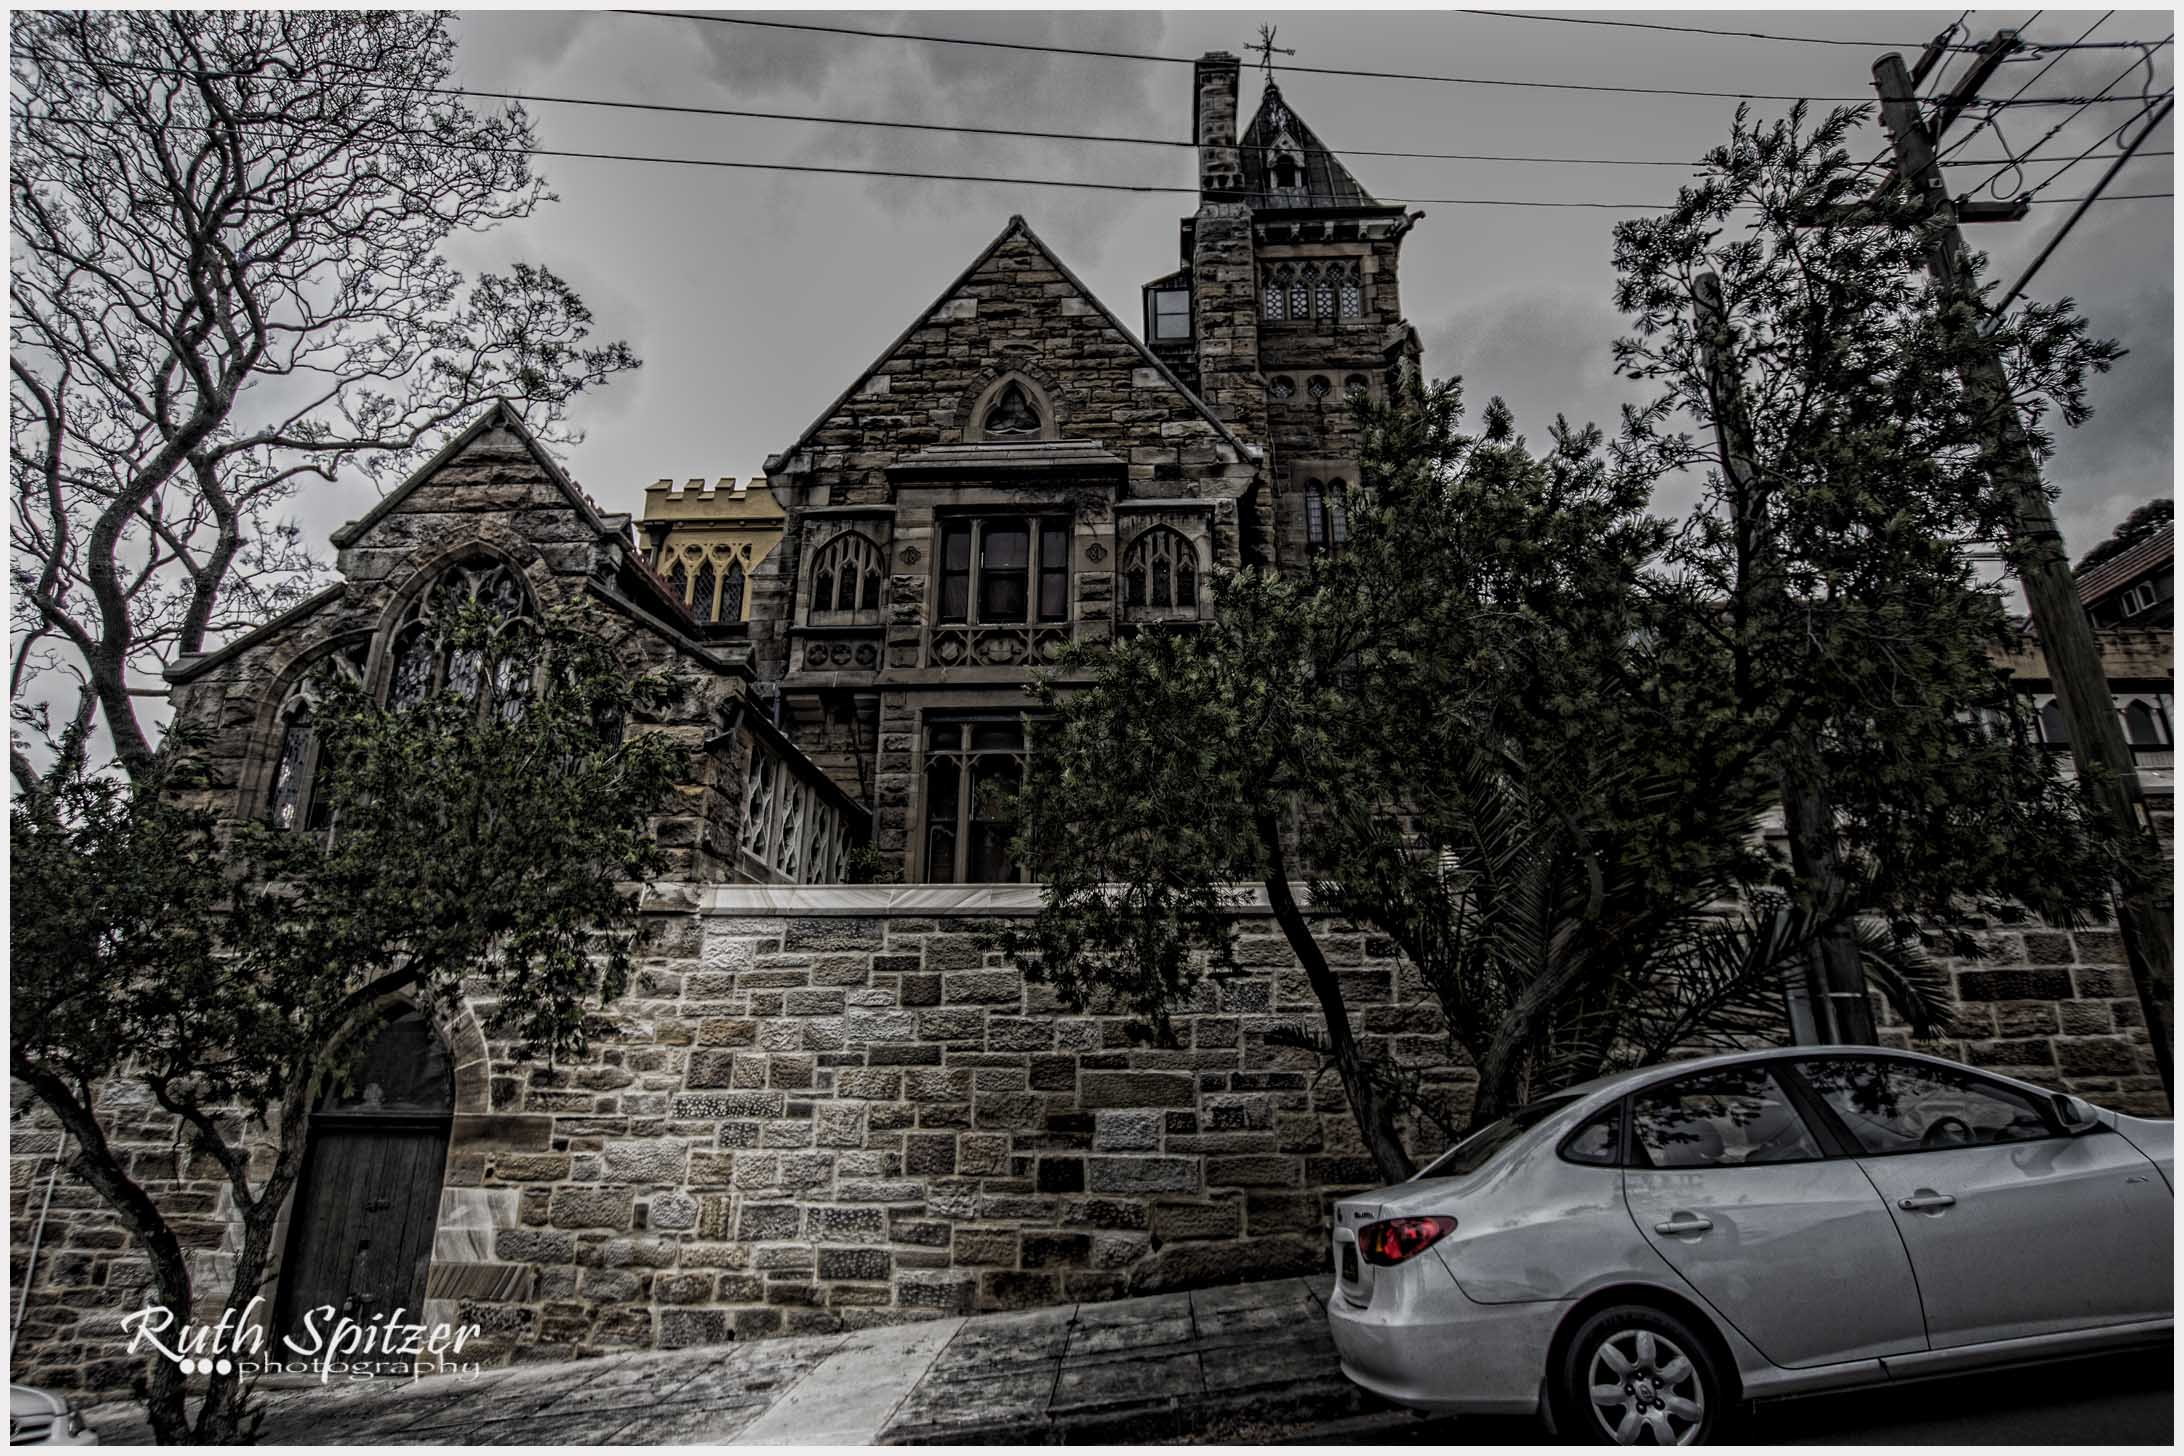 The Abbey Haunted Gothic Mansion